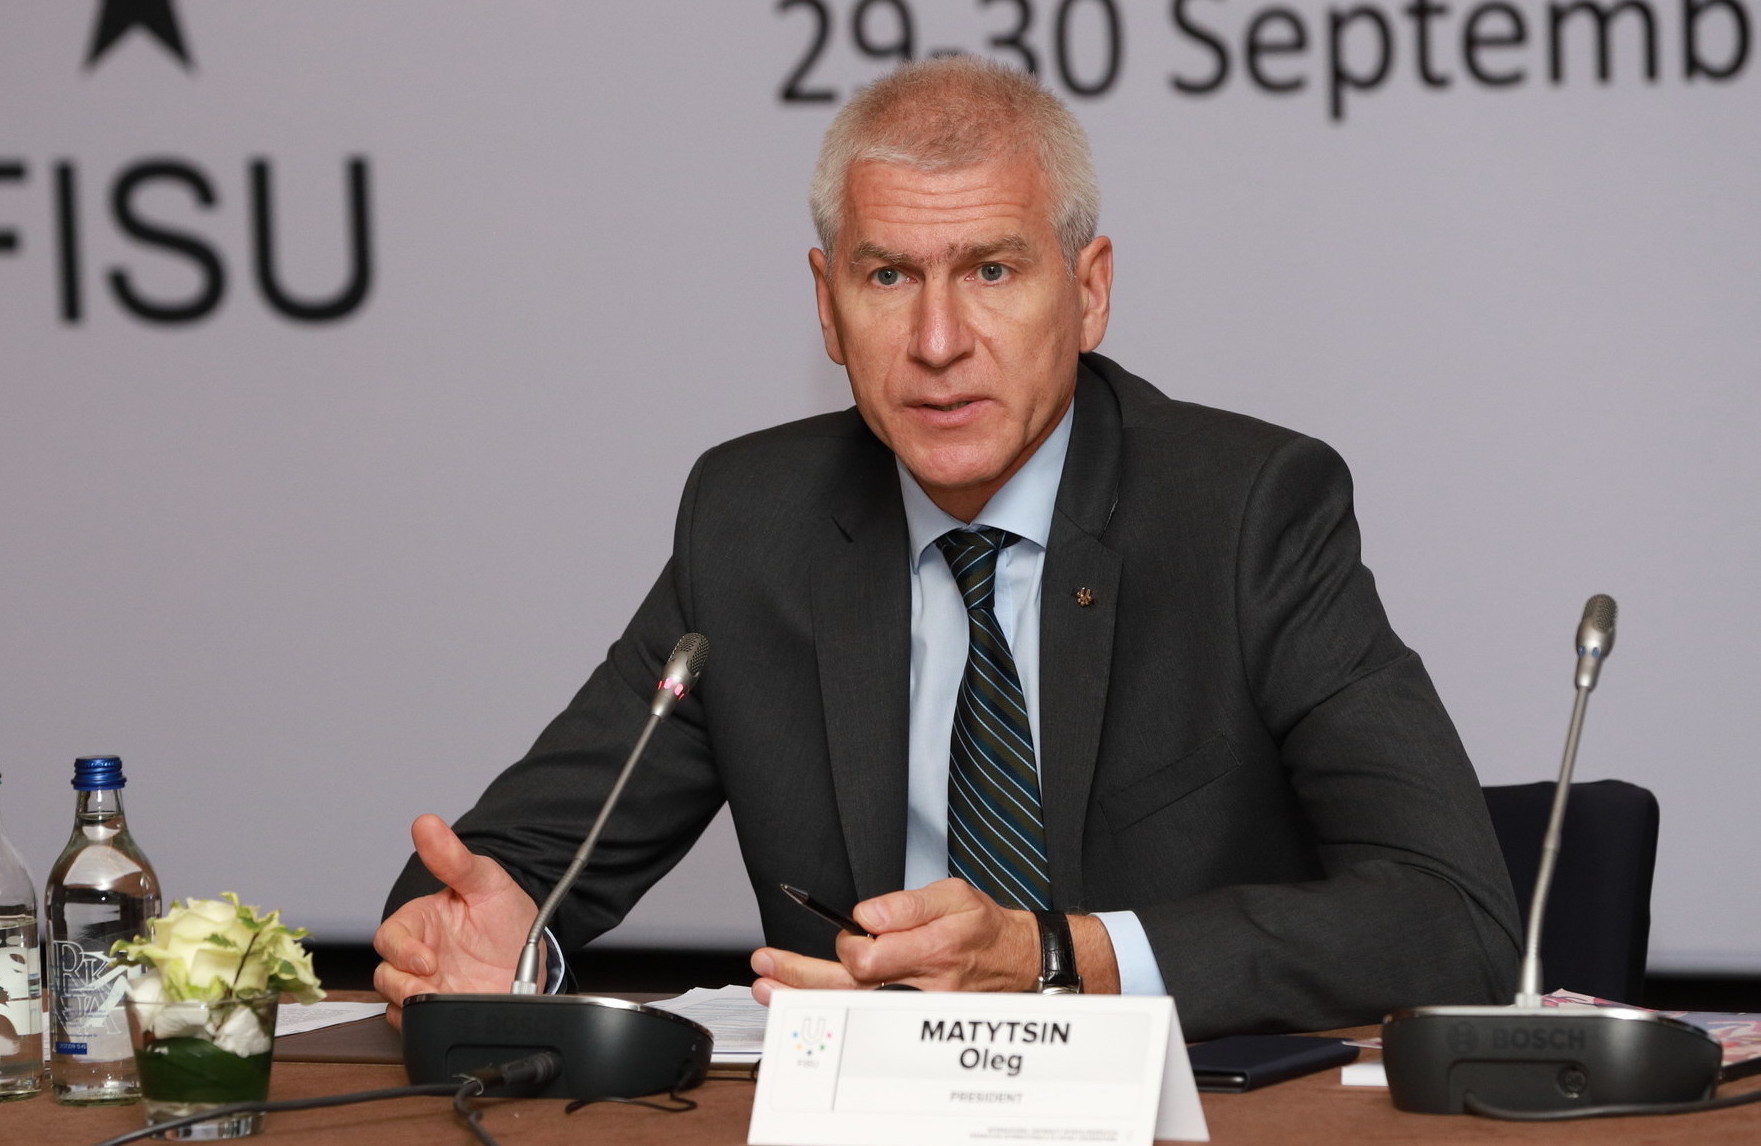 FISU President Matytsin hands out prizes at Russian university sports awards ceremony